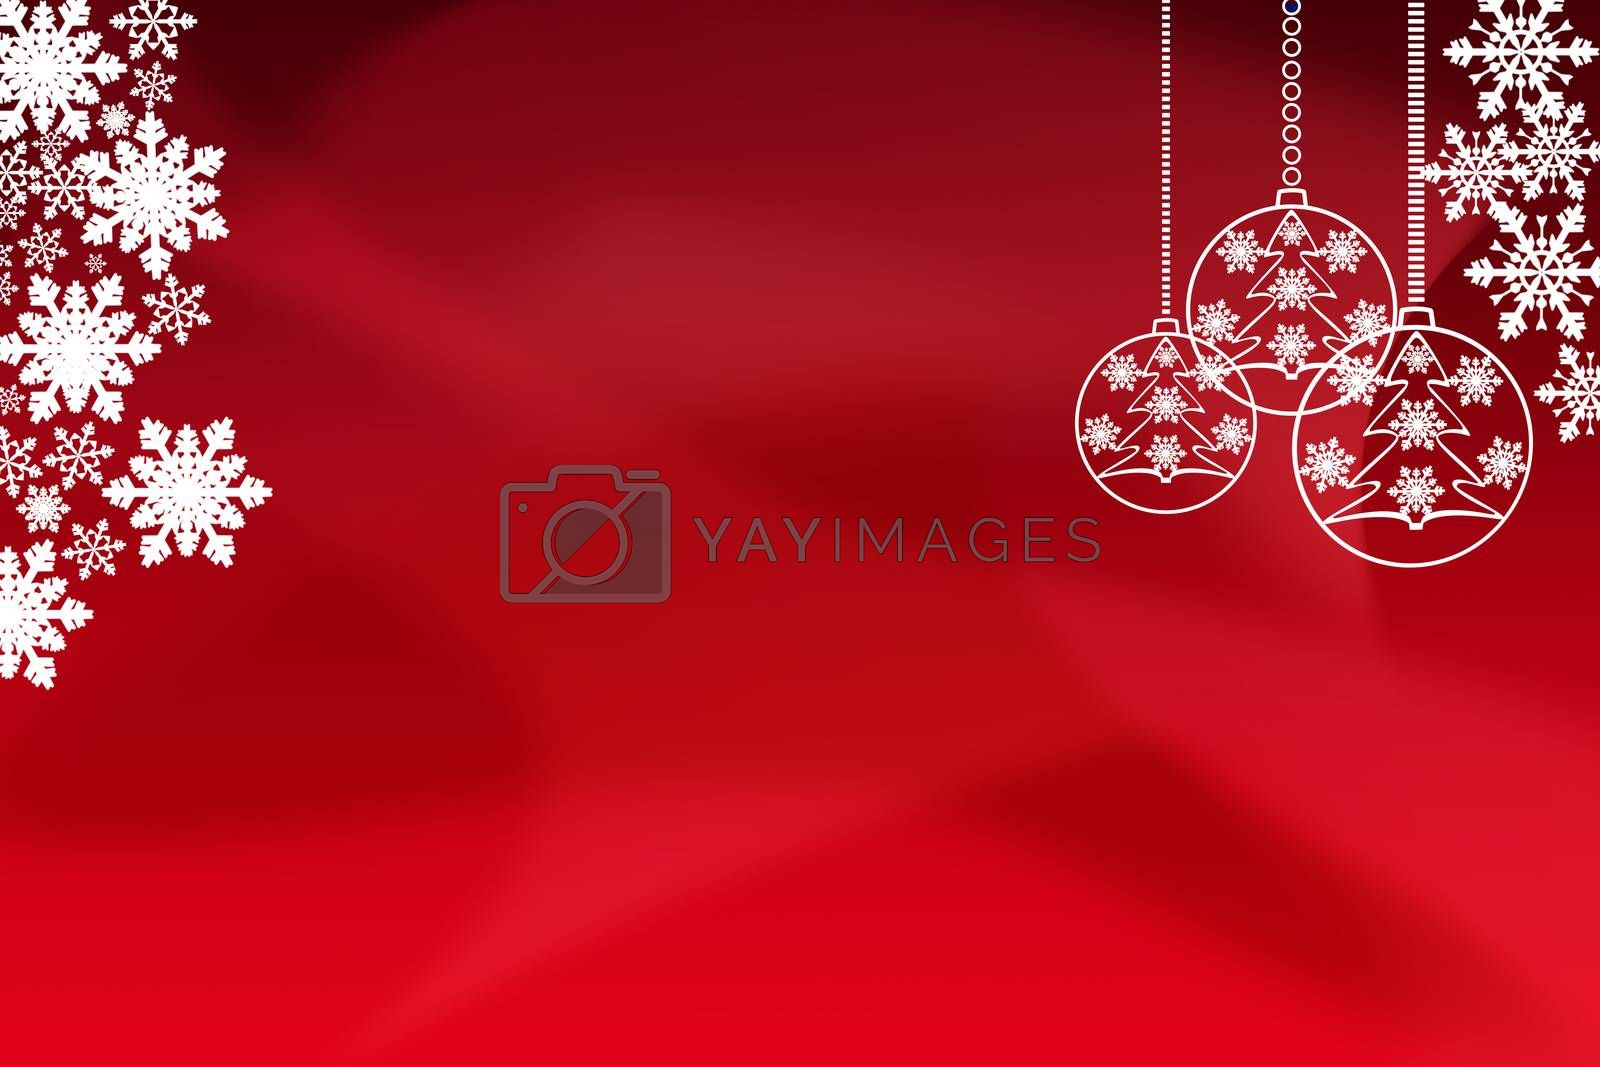 Christmas screensaver, background for Christmas and new Year greetings, red background with snowflakes, Christmas balls and a place for the inscription